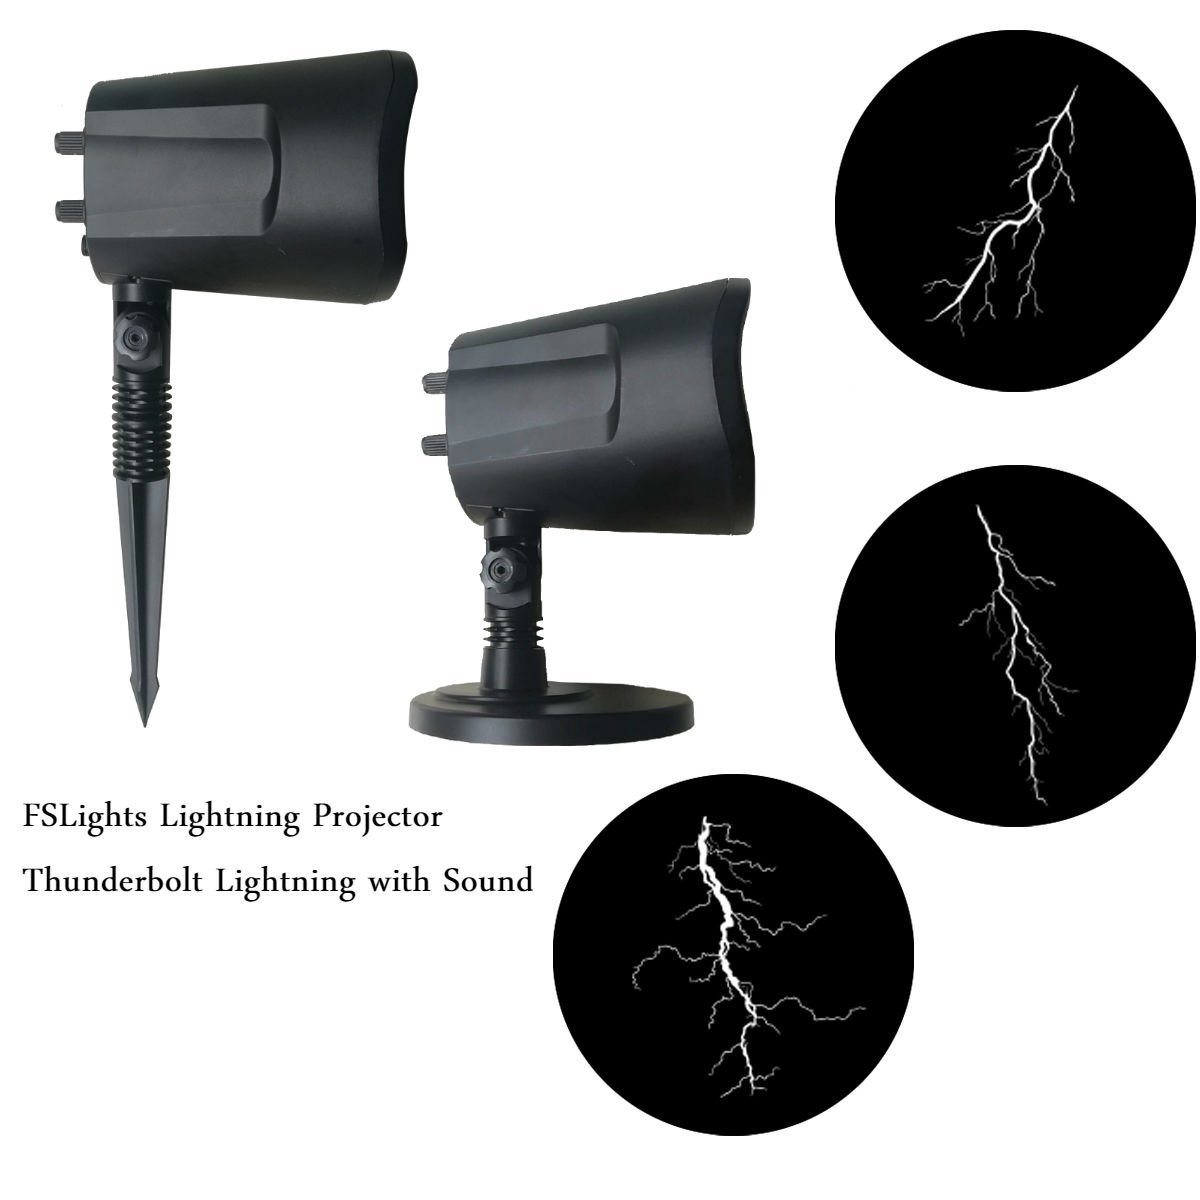 FSLights Halloween Lights Projection,Thunderbolt Lightning Projector with Sound,Cool Scene,Funny Gifts,Decorative Lighting Landscape Projector Lamp for Patio Garden Lawn Decoration